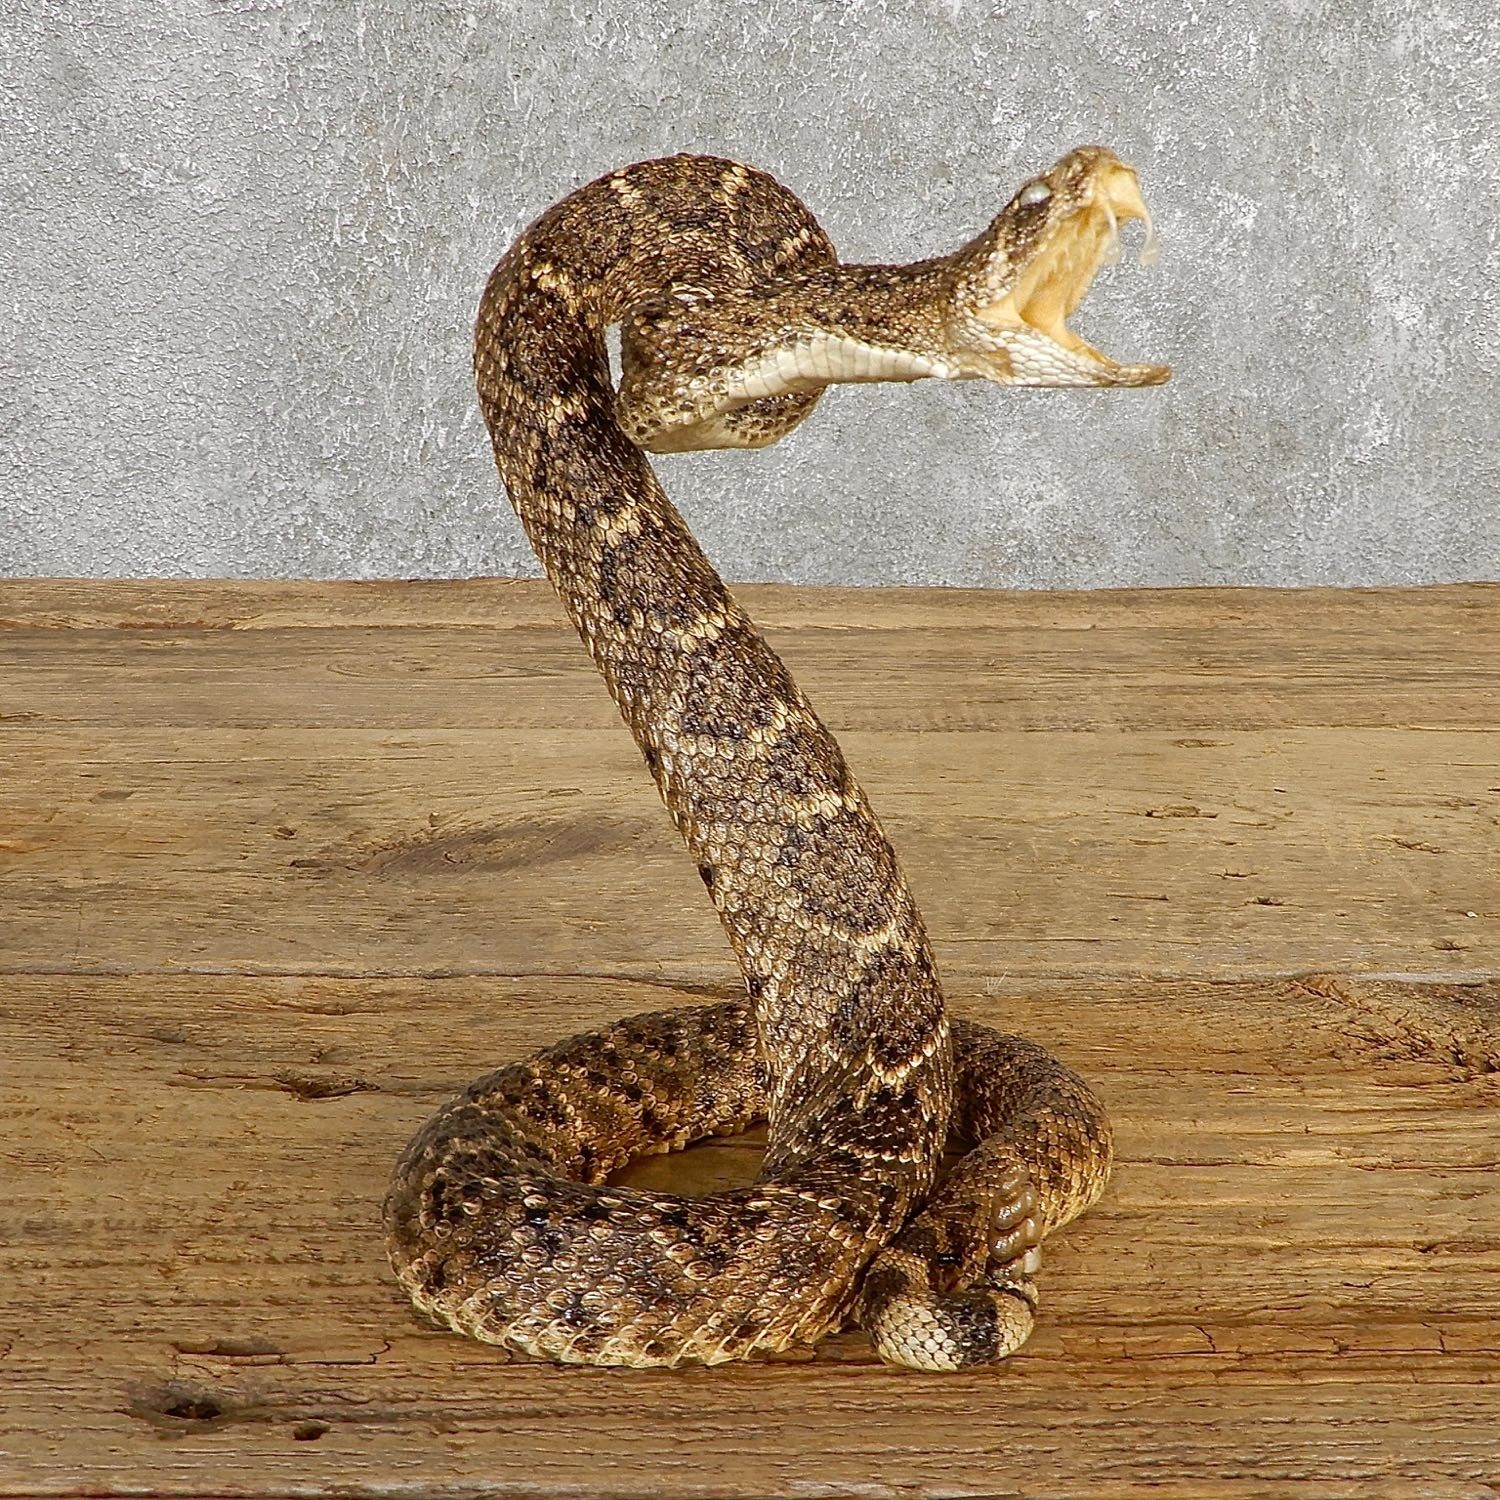 Western Diamondback Rattlesnake Mount For Sale #19982 - The